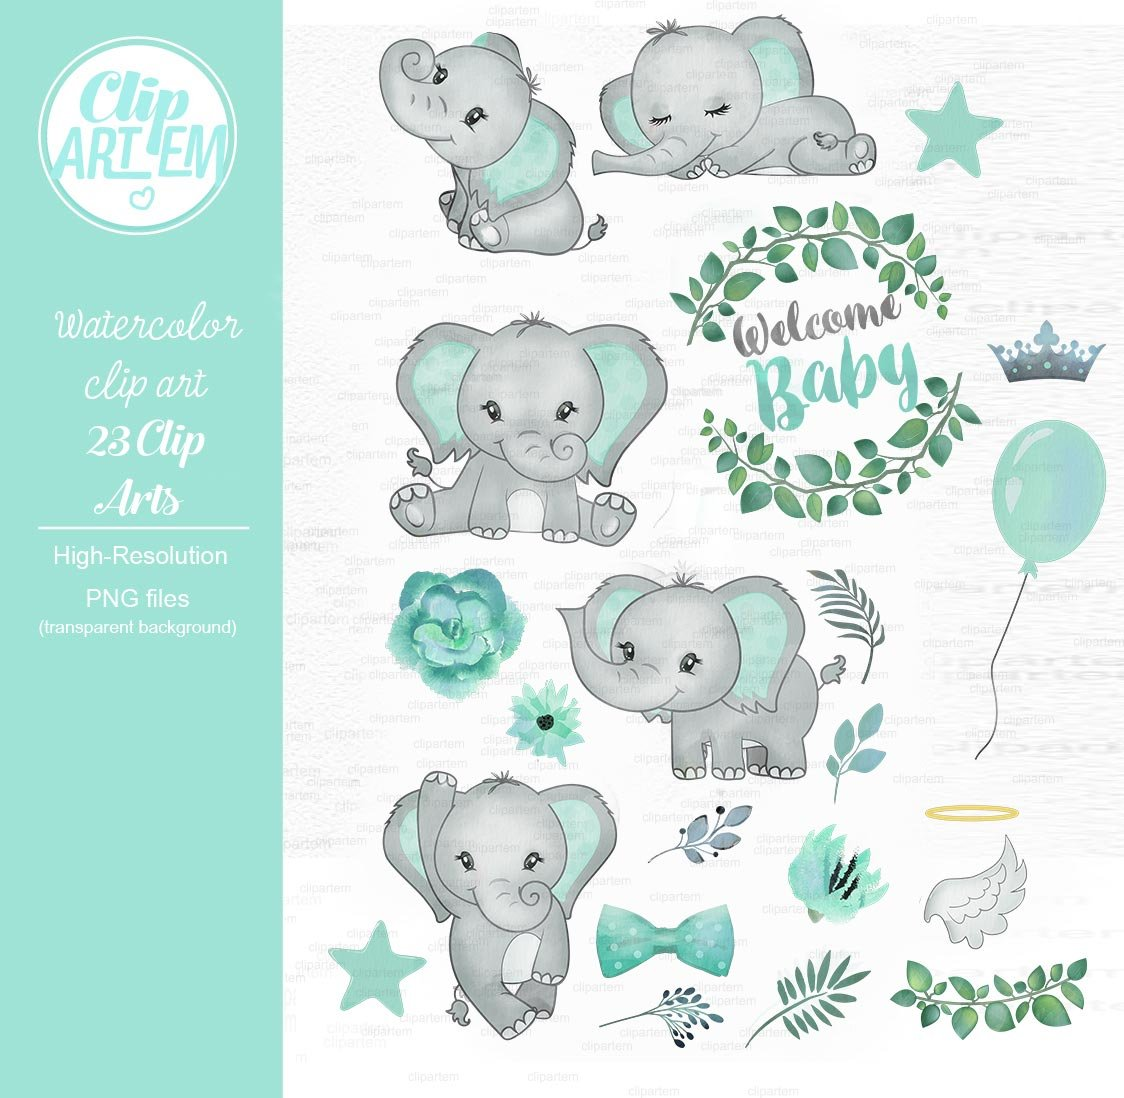 Baby Elephant Watercolor Clipart Pre Designed Photoshop Graphics Creative Market 3,000+ vectors, stock photos & psd files. baby elephant watercolor clipart pre